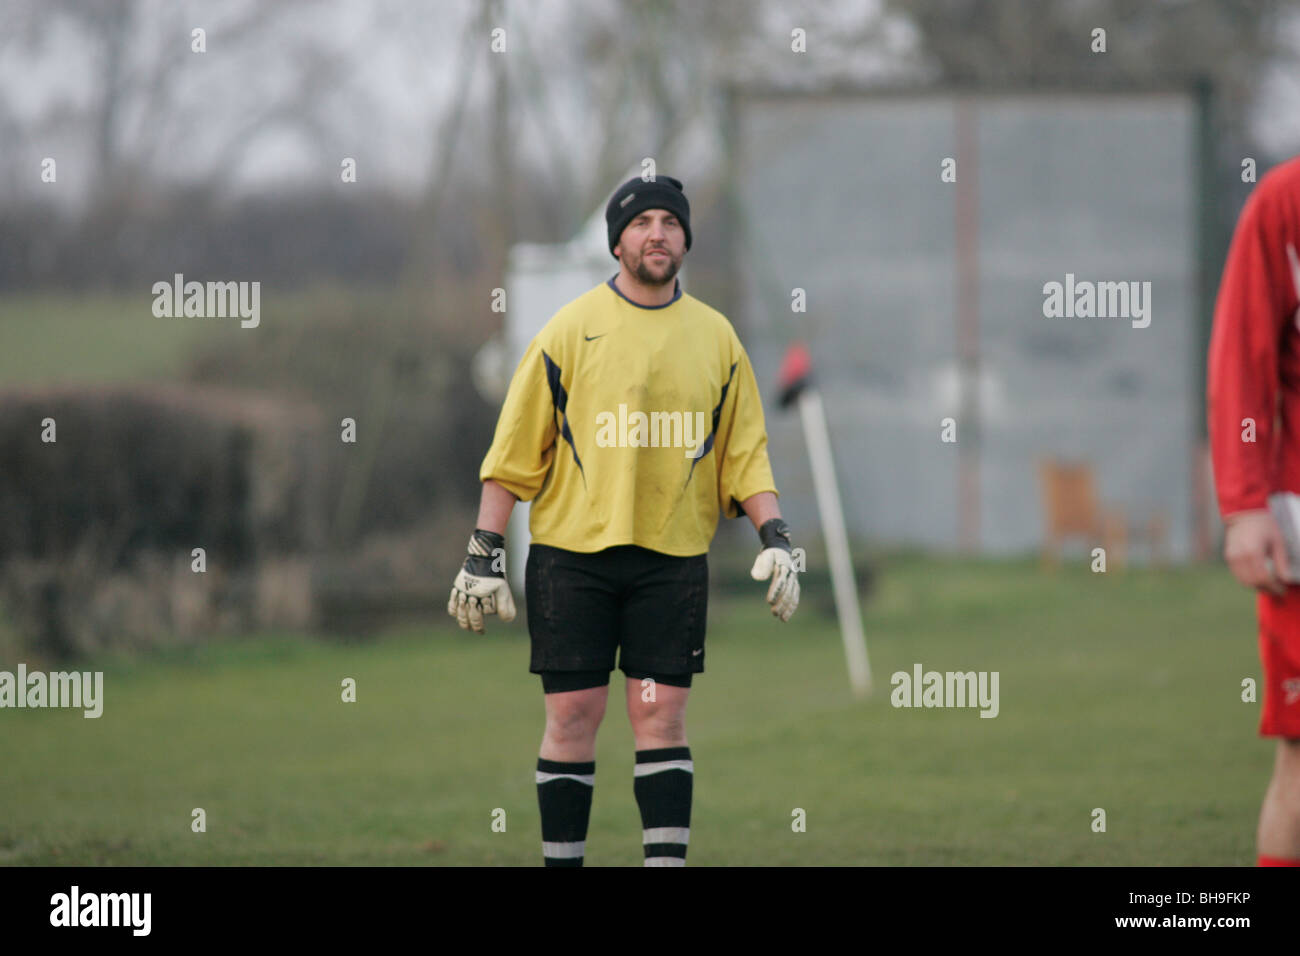 A goalkeeper playing local league football (soccer) keeps warm by wearing a woolen hat. - Stock Image